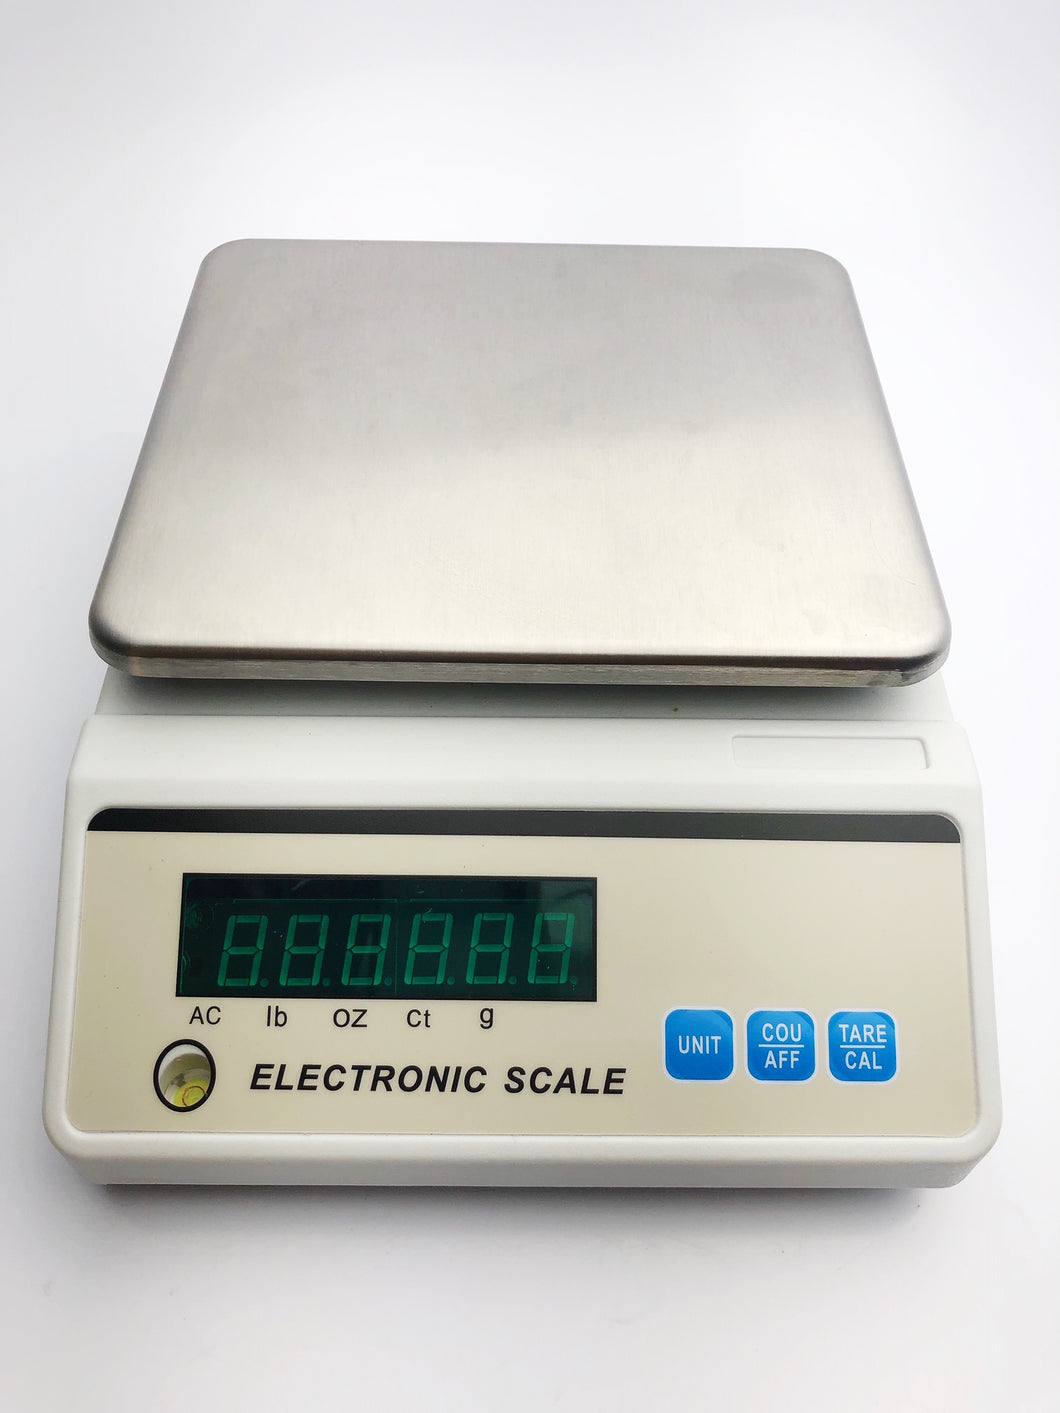 Digital Counting Balance Scale - 10kg/0.1g or 1200g/0.1g